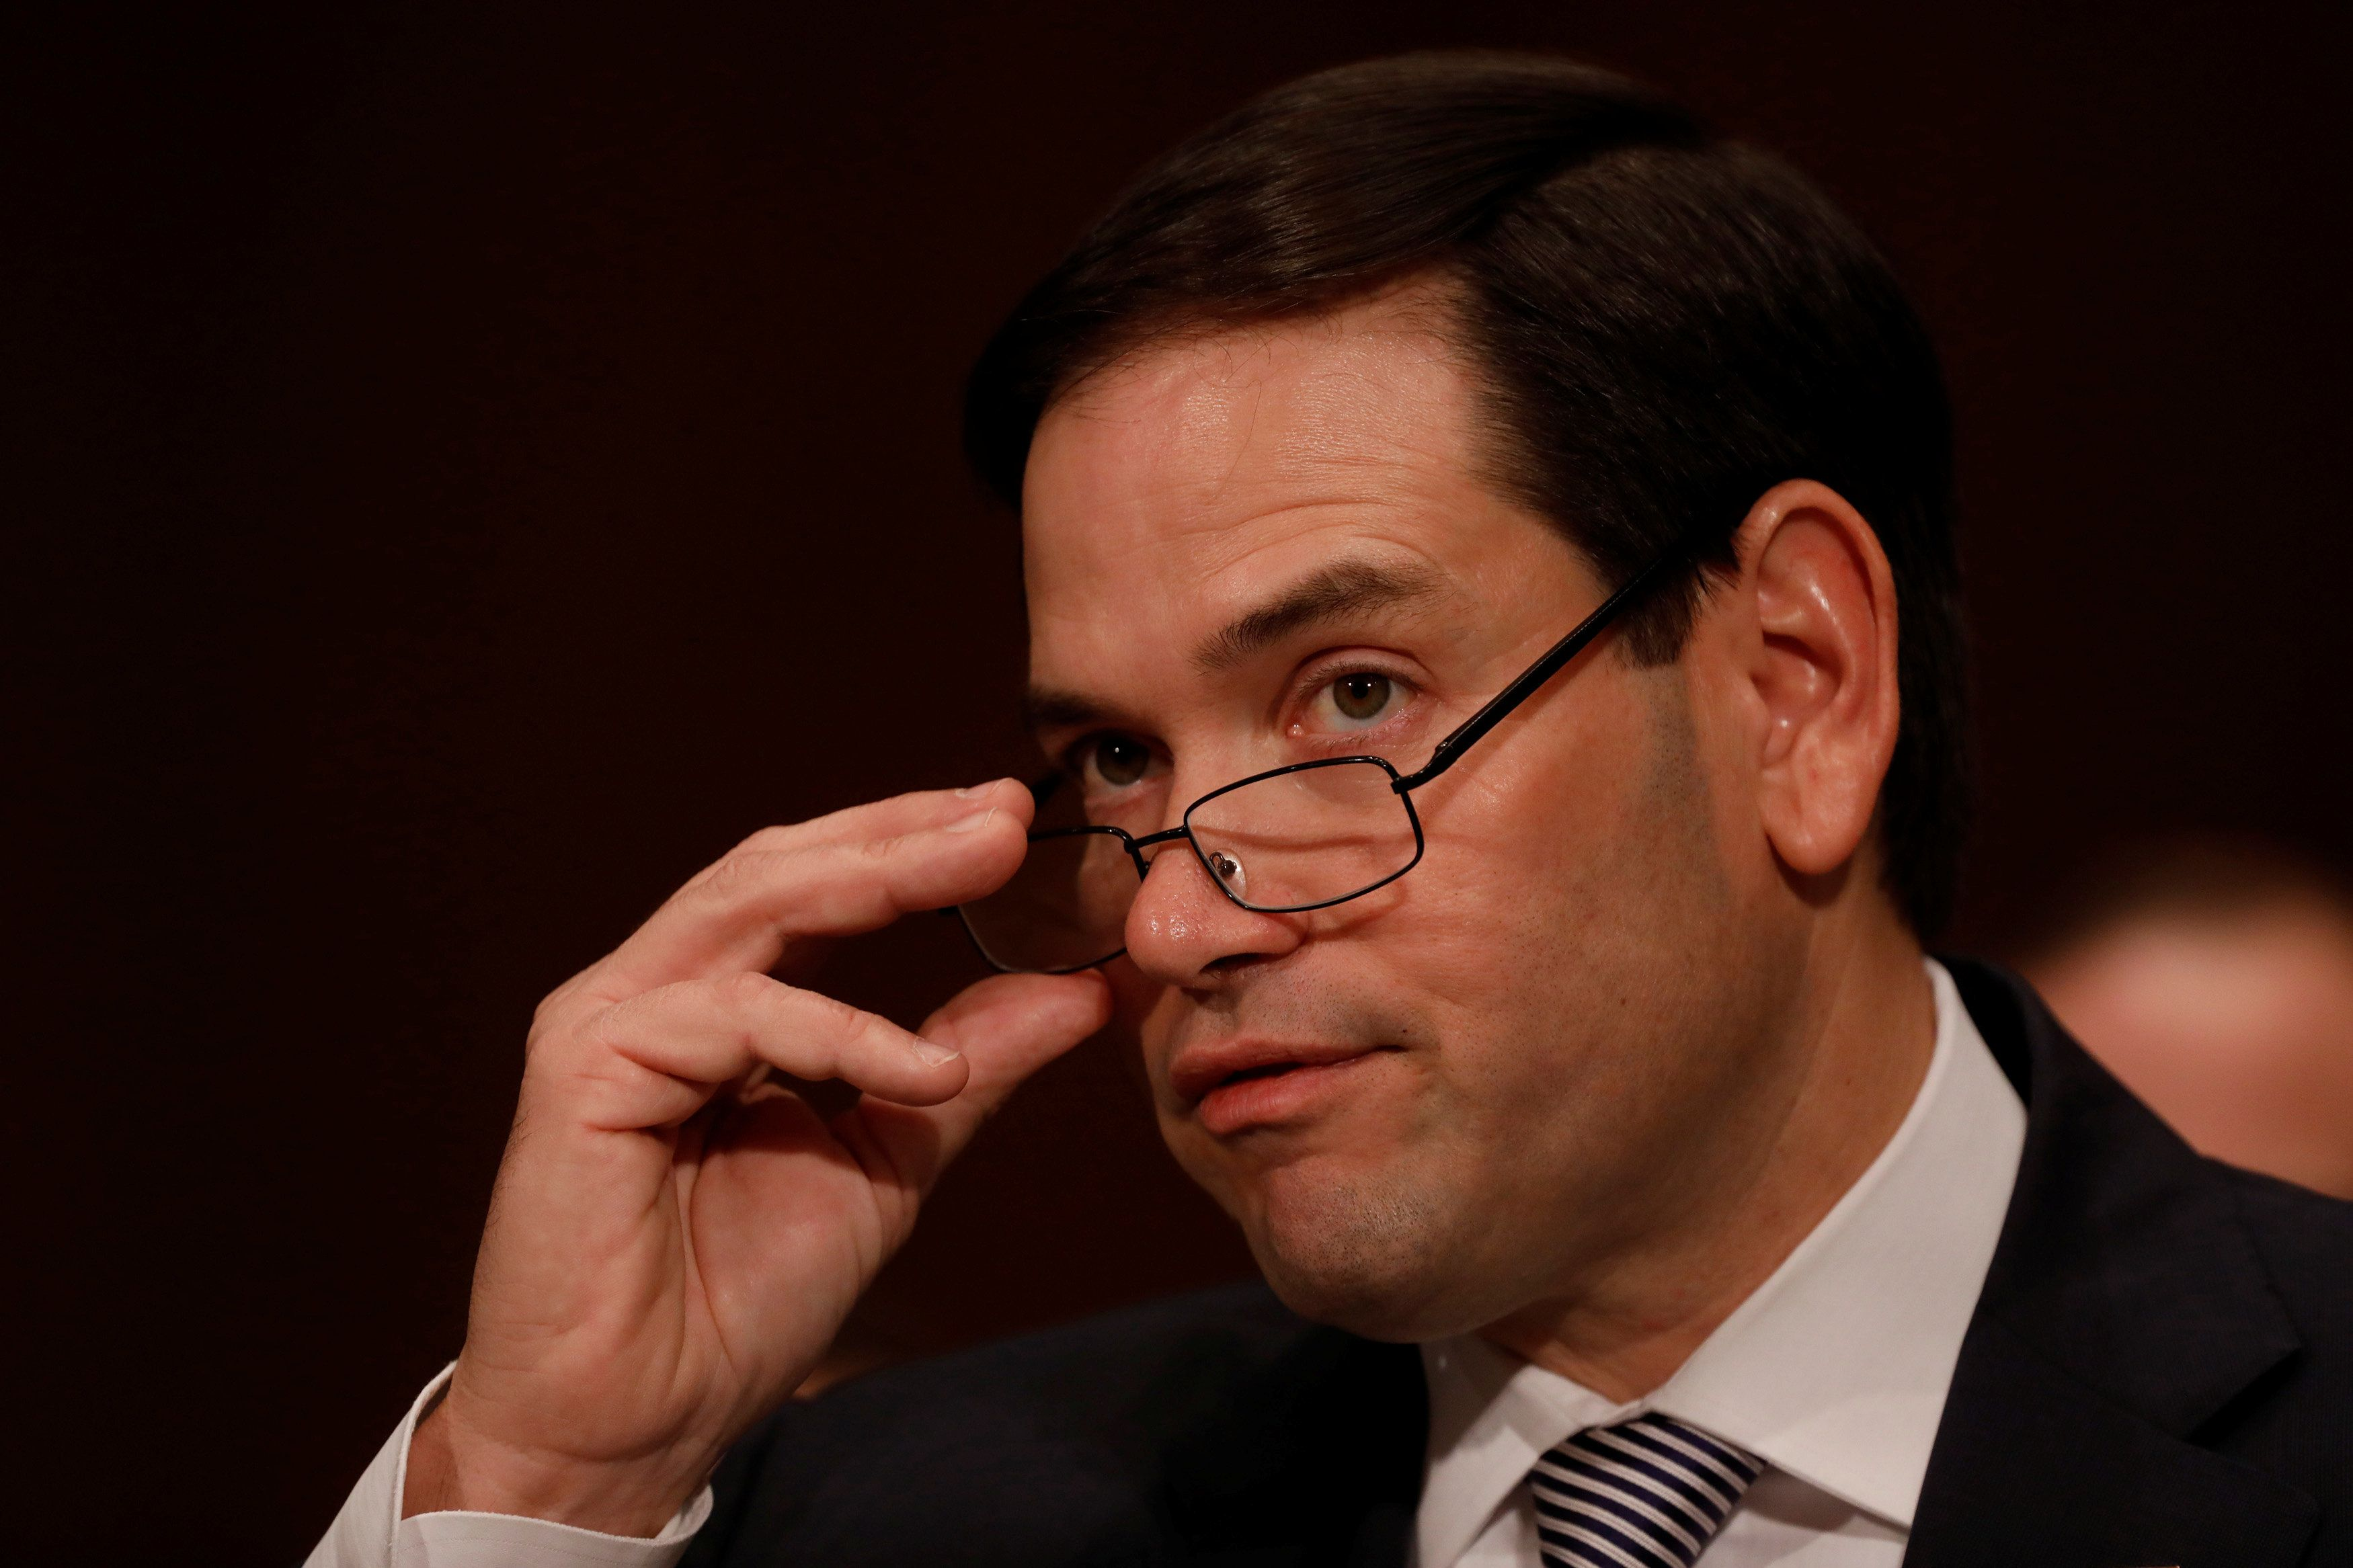 Rubio Dismisses Report About Dem Senator Attempting to Contact Dossier Author